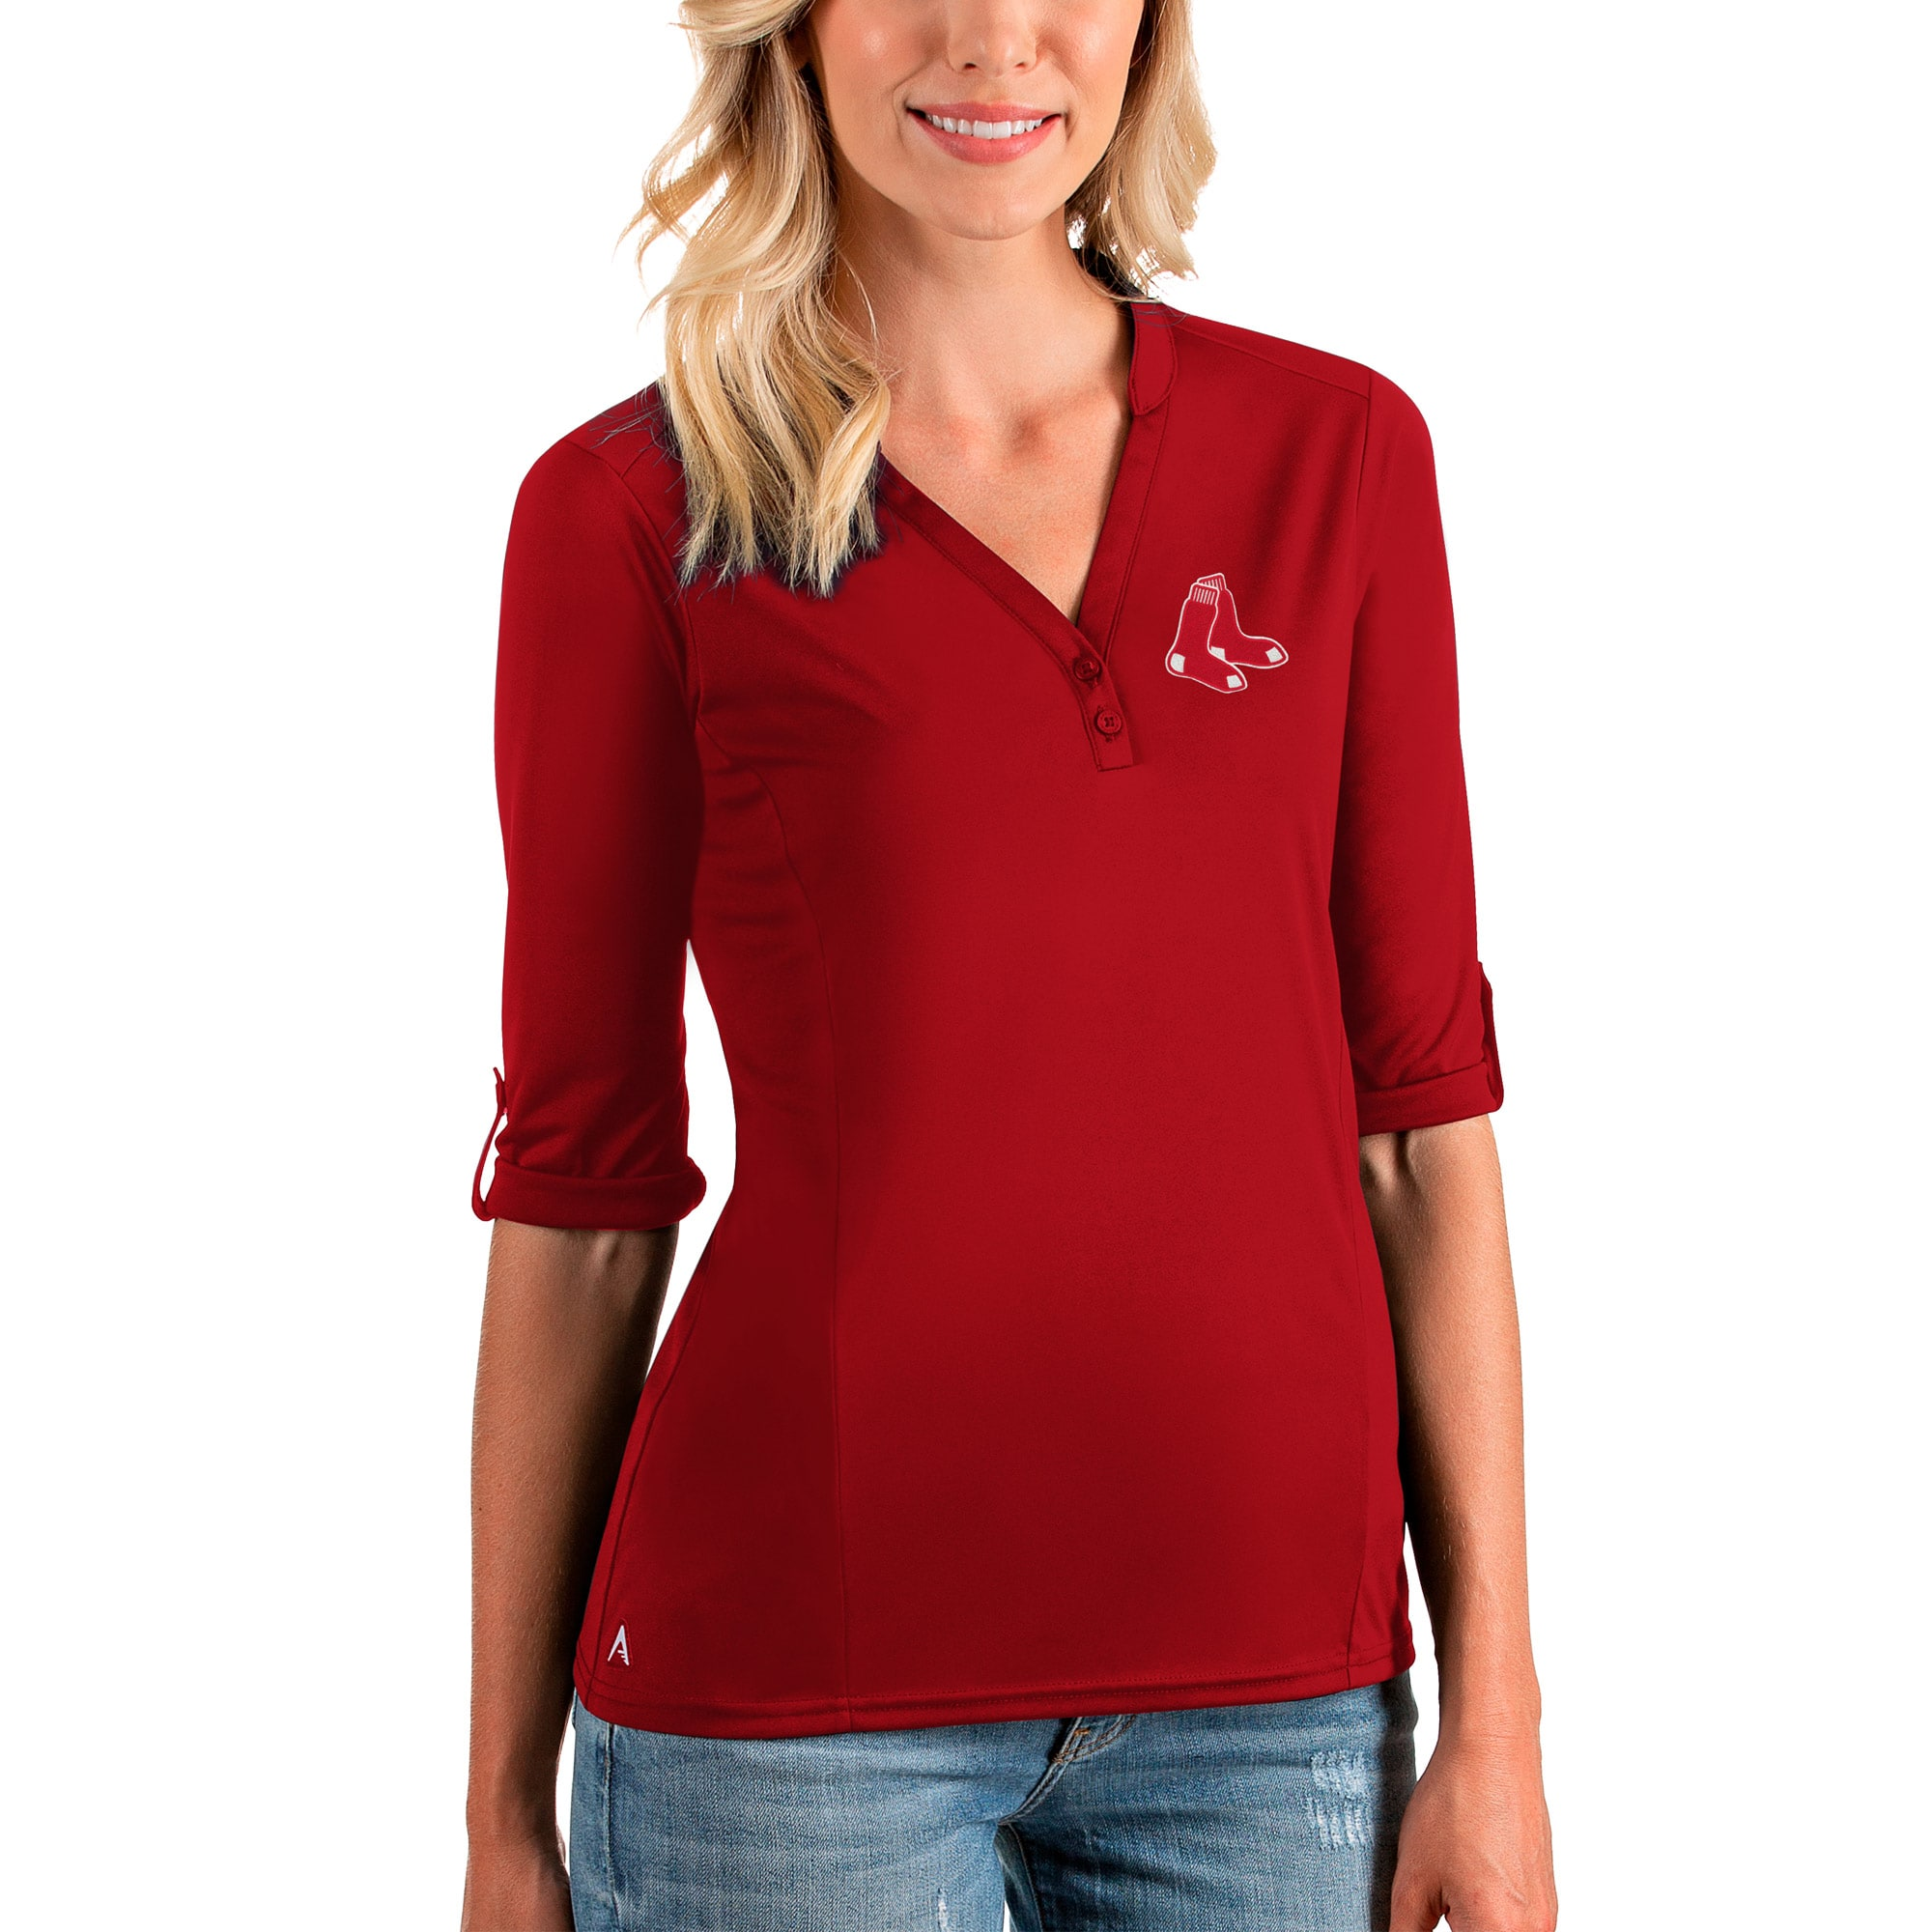 Boston Red Sox Antigua Women's Accolade 3/4 Sleeve V-Neck Top - Red